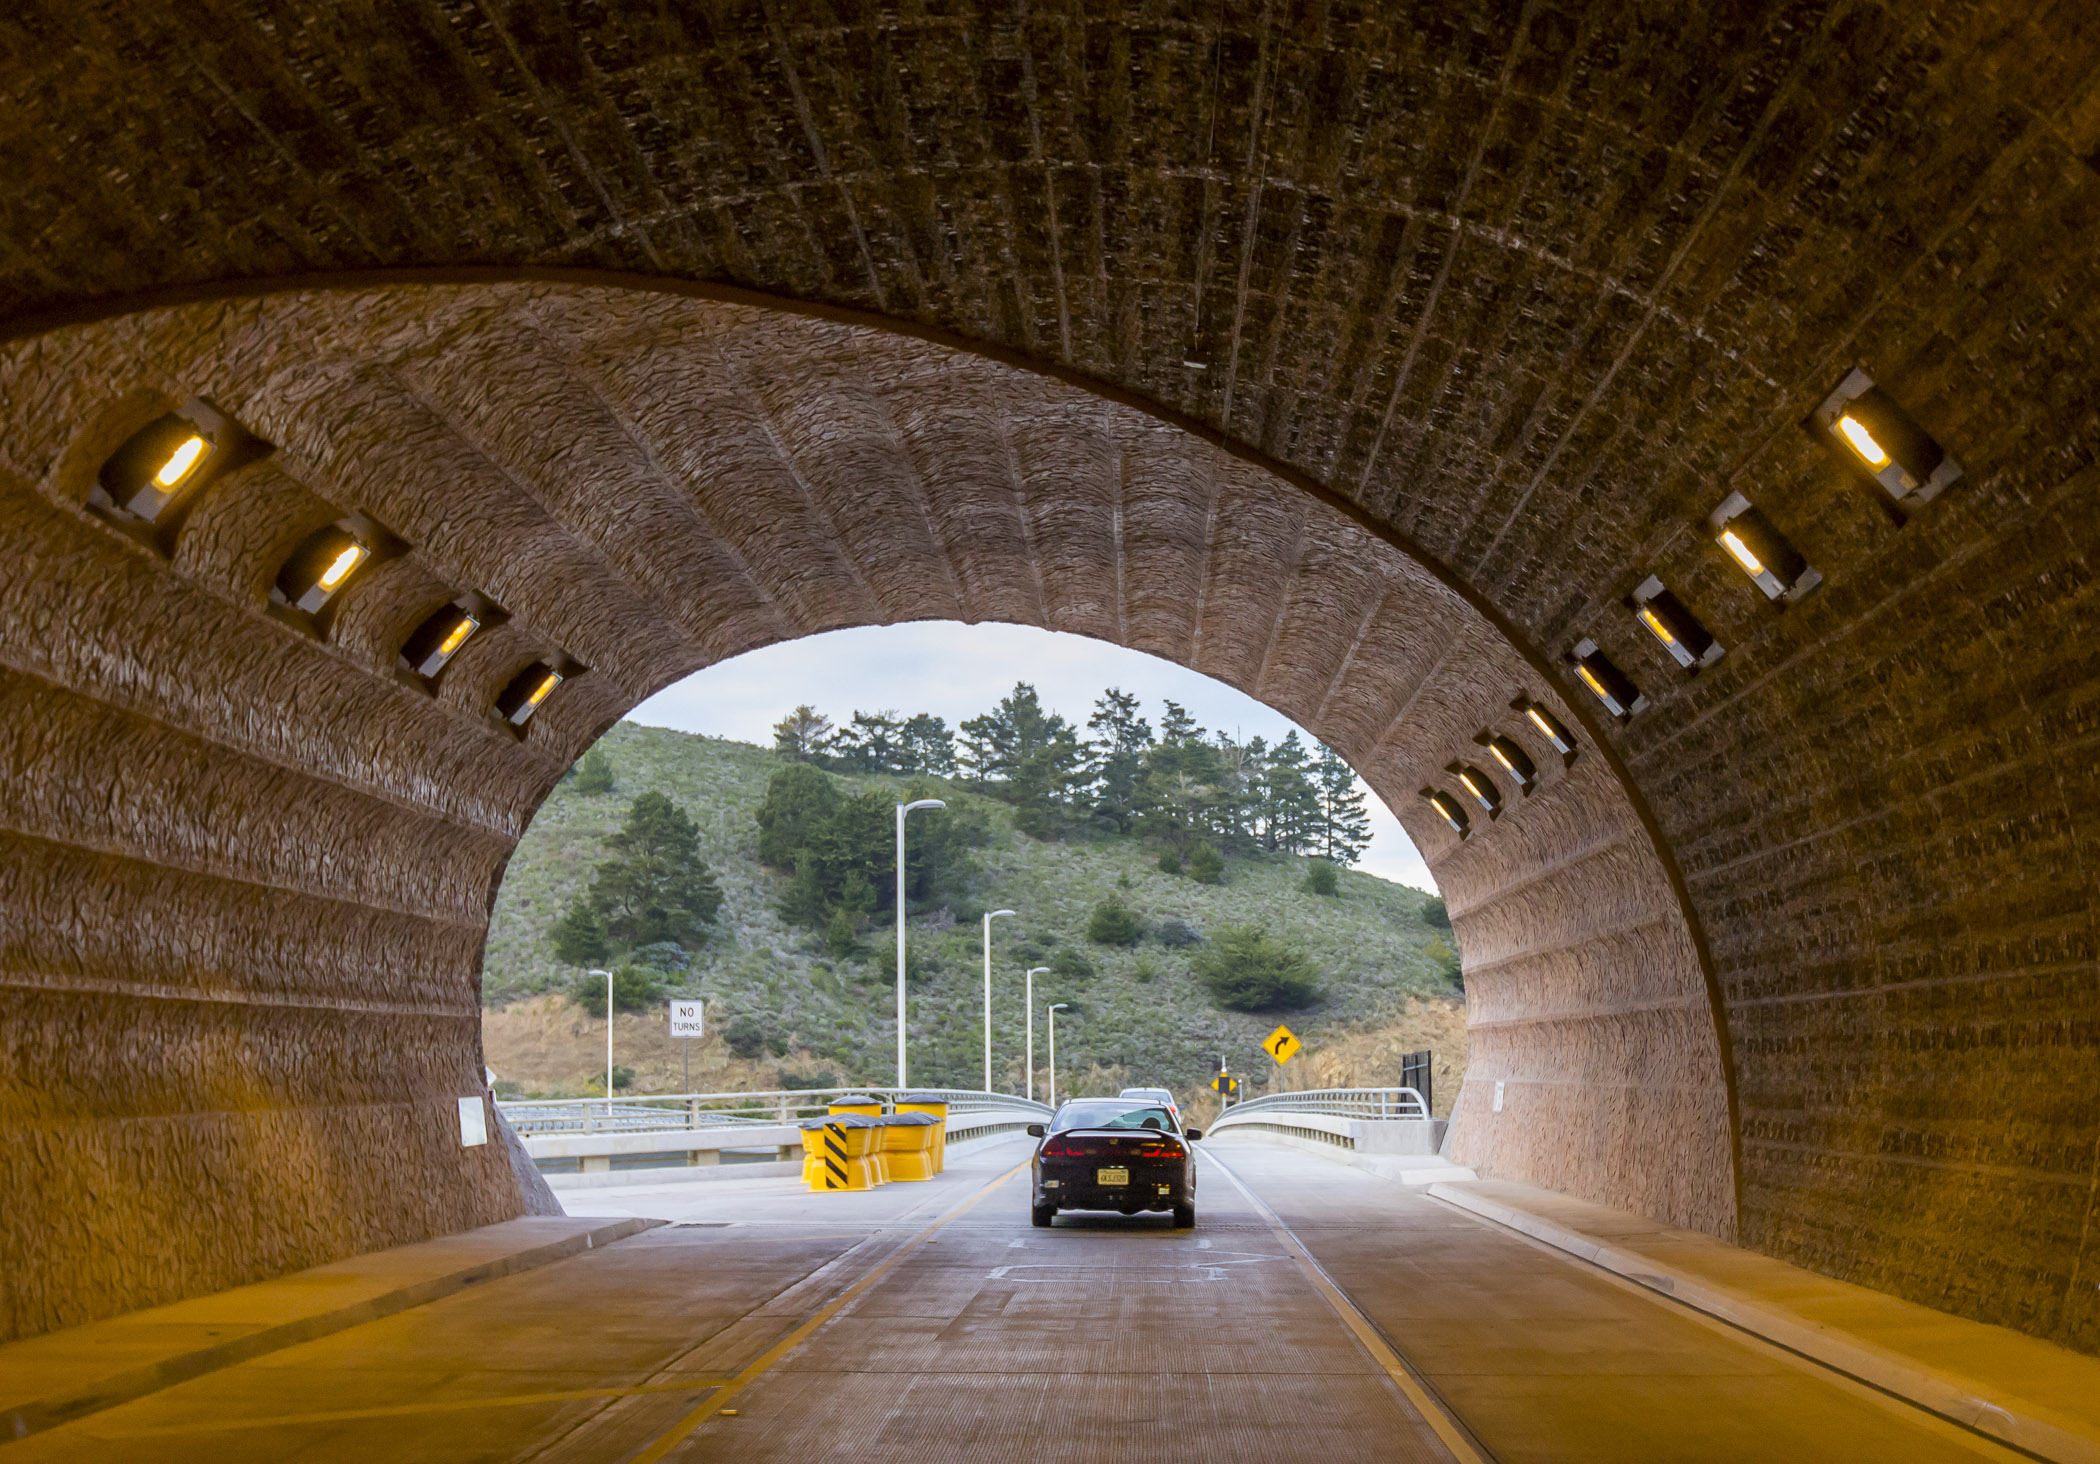 Hntb Corporation Deepens Practice To Serve Growing Tunnel